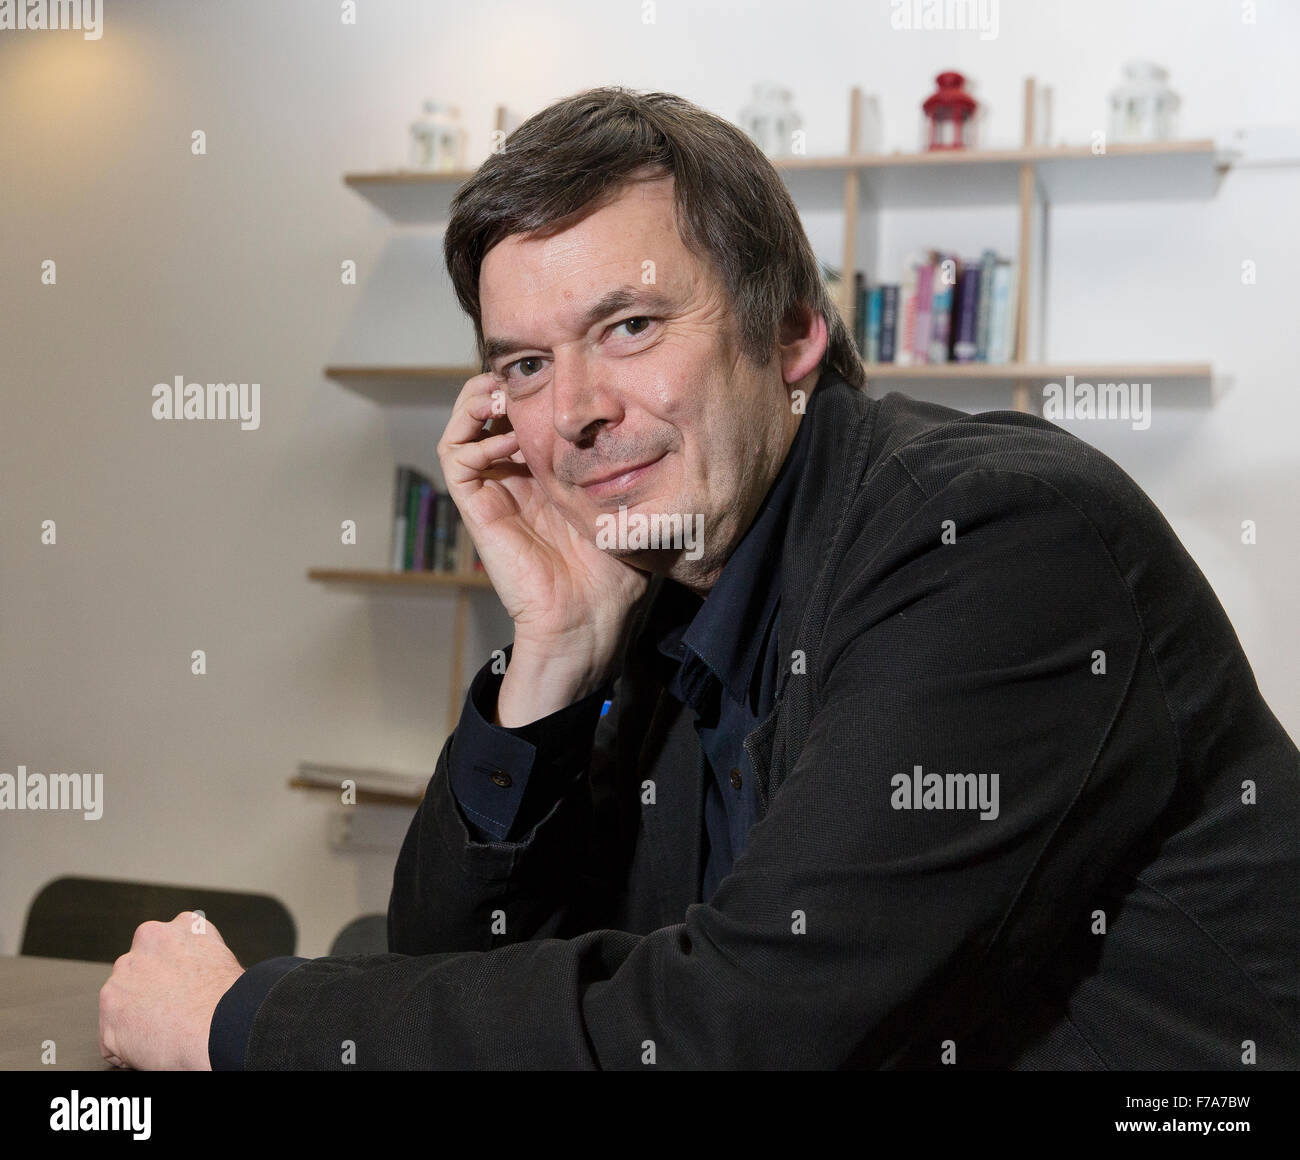 Ian James Rankin, OBE, DL, FRSE, Scottish crime writer, best known for his Inspector Rebus novels - Stock Image